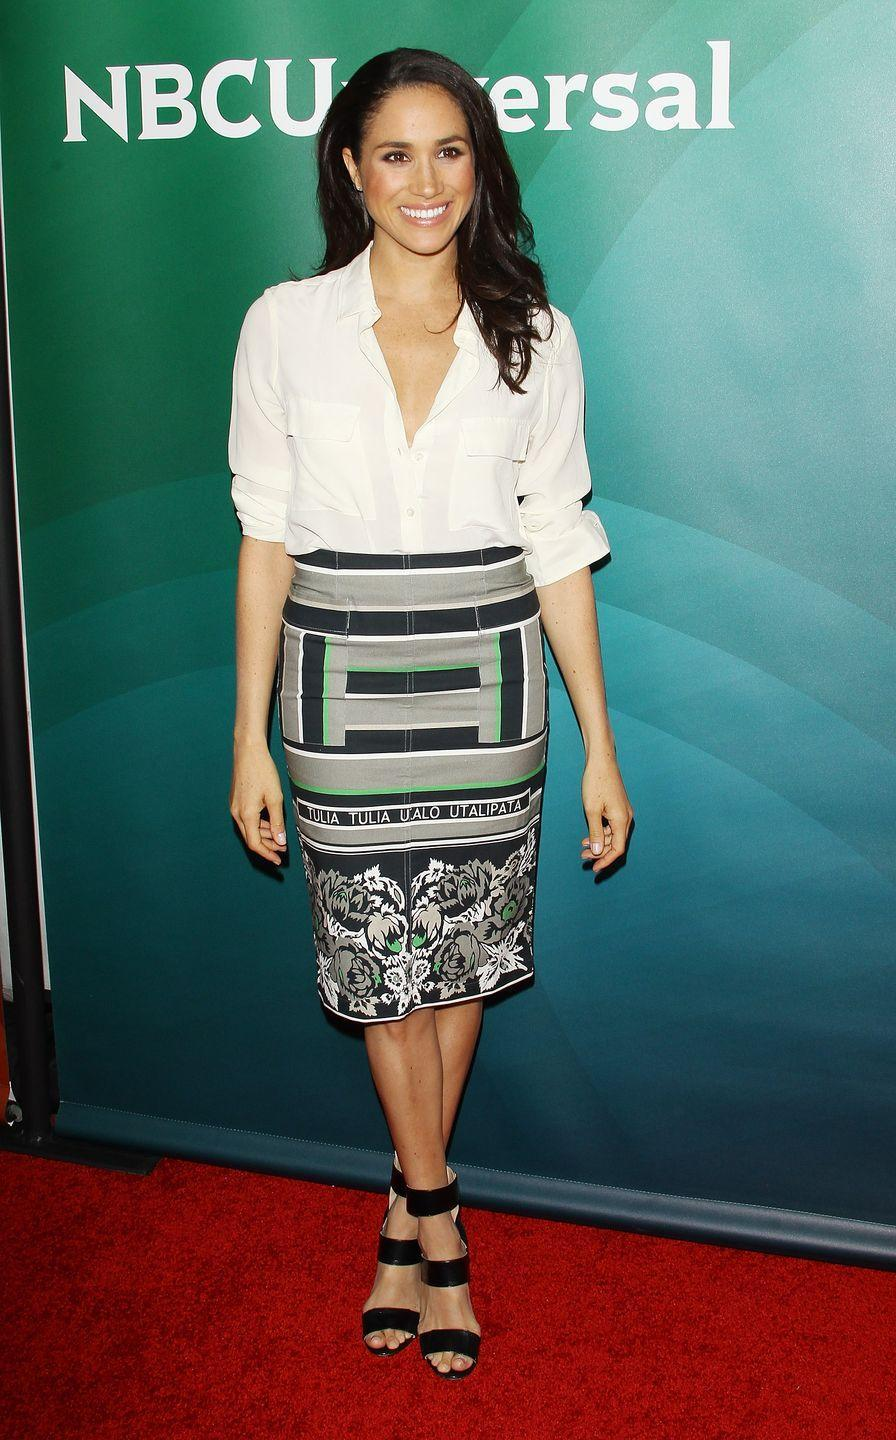 <p>Meghan, like Kate, offset the patterned skirt she wore during a press tour in 2014 with a simple white blouse and black shoes. An extremely chic ensemble, if you ask me. </p>